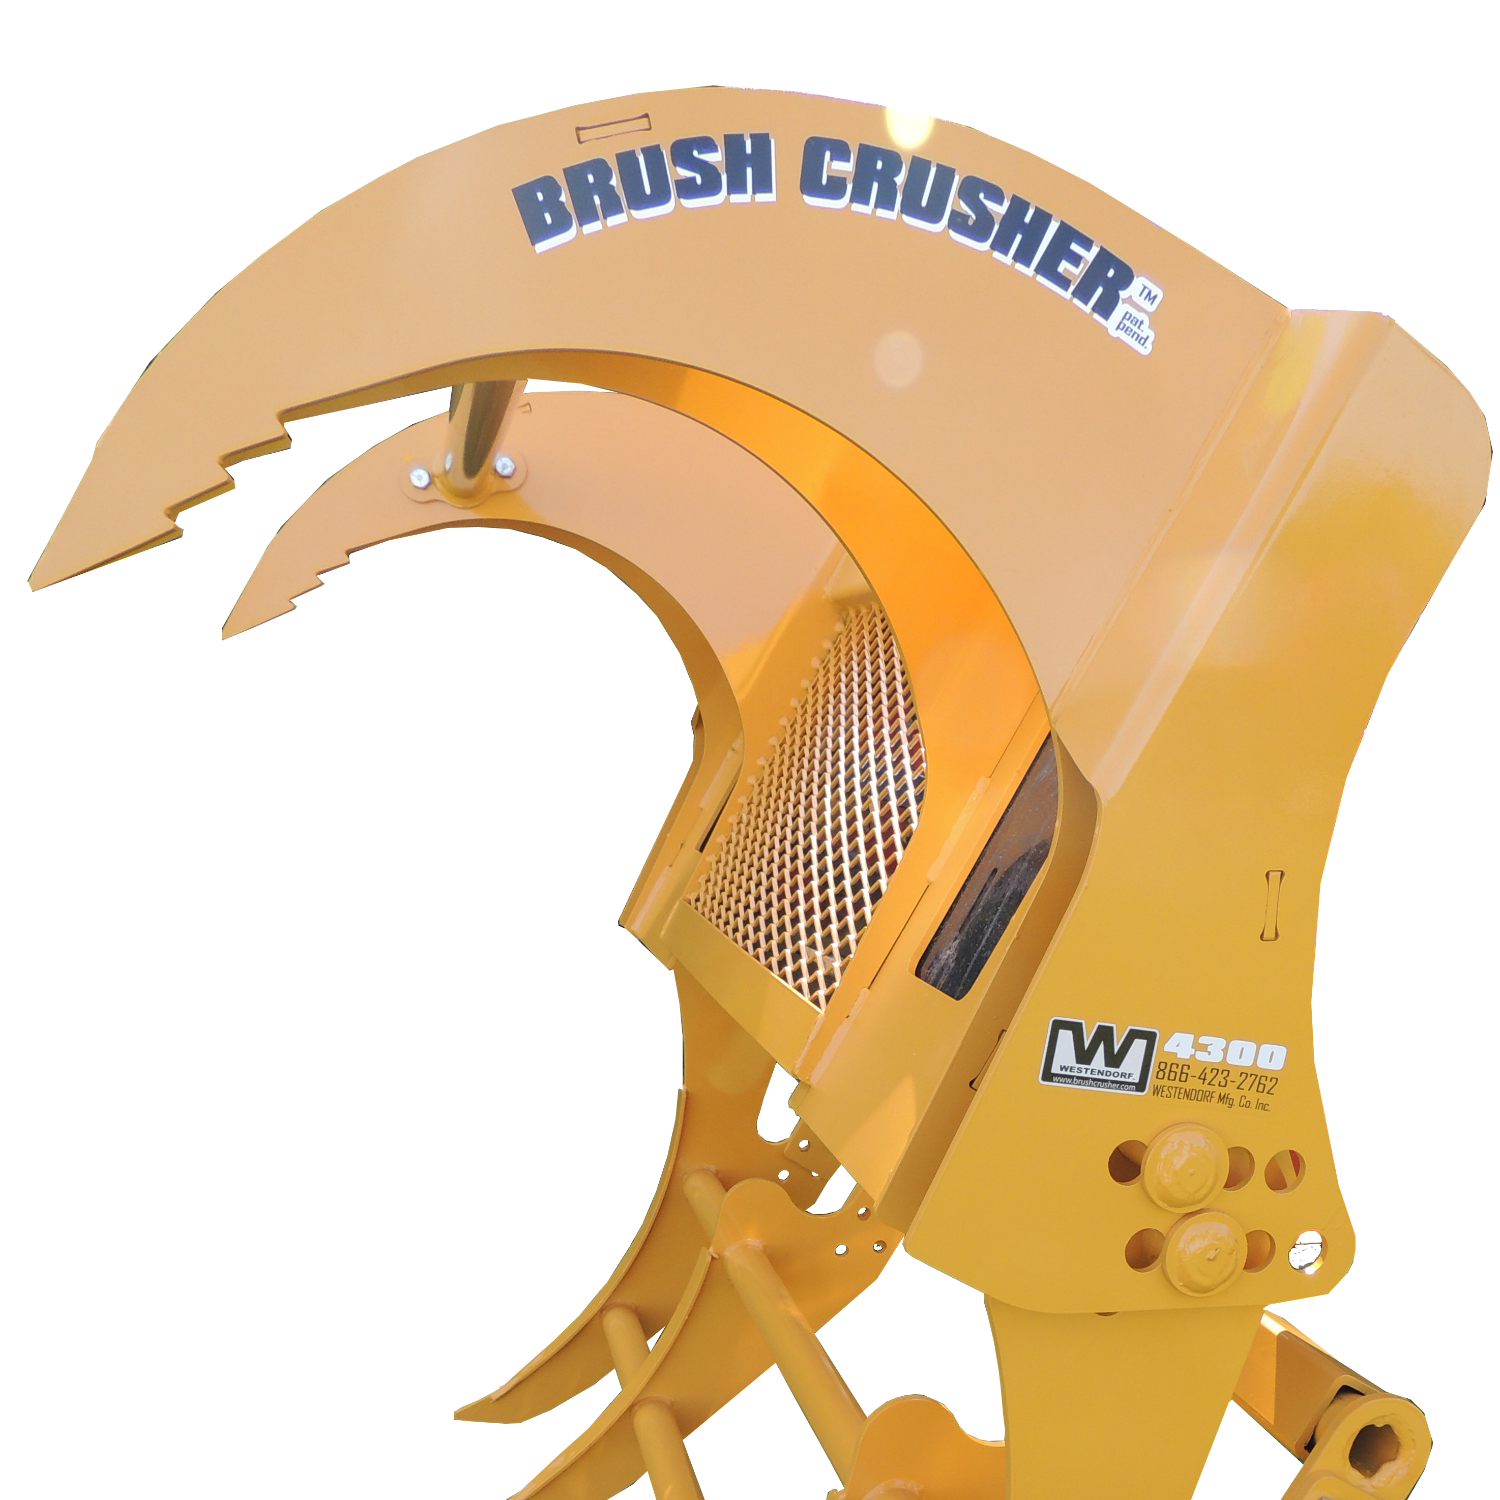 The Brush Crusher™ operates off the bucket 